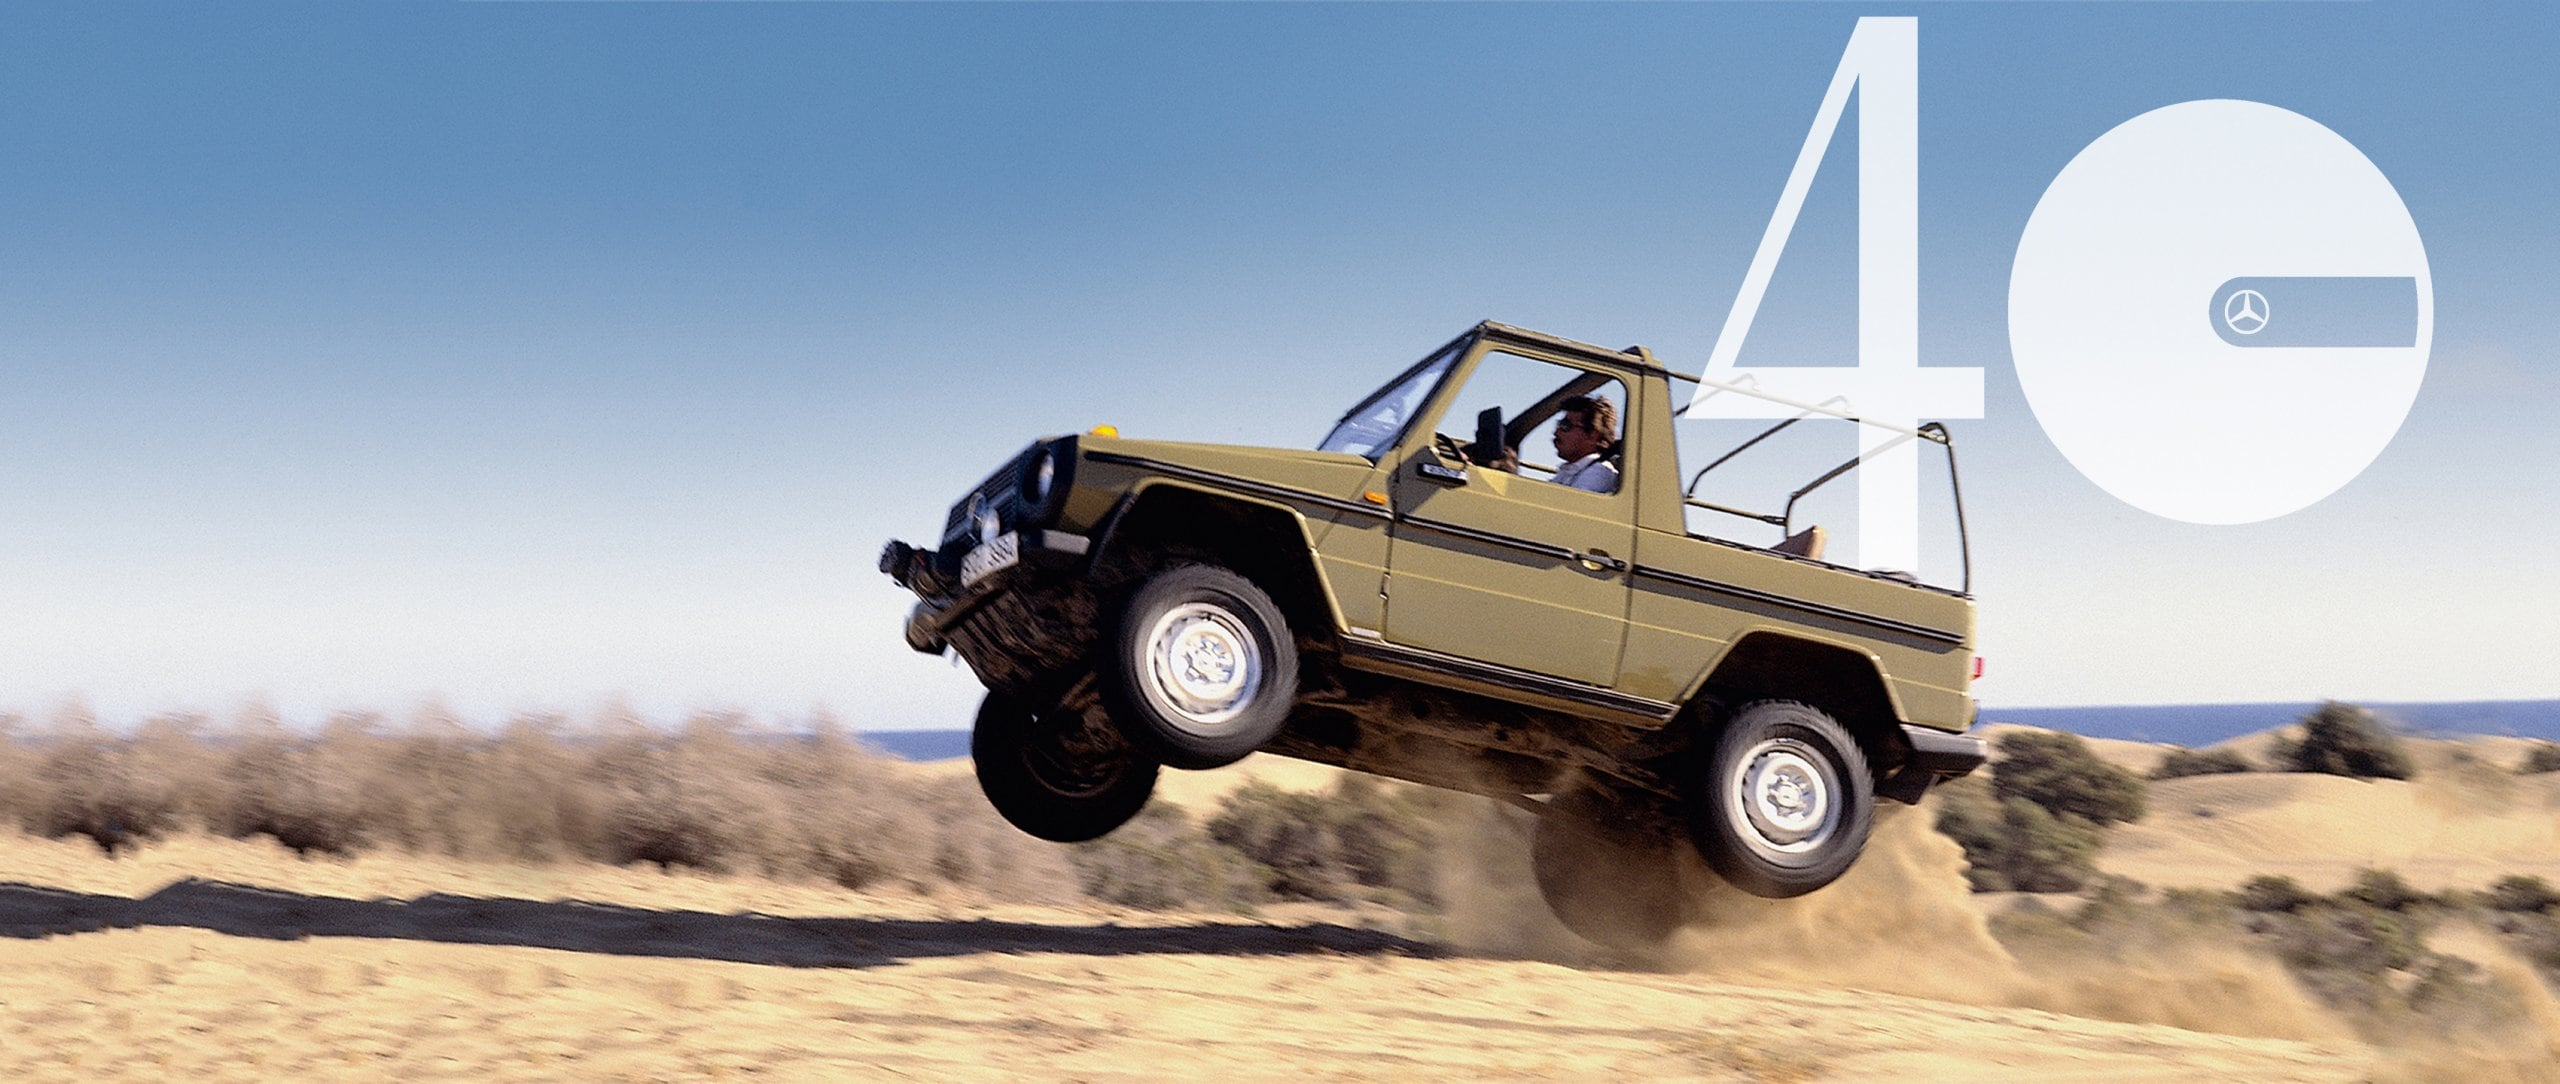 Die Mercedes-Benz G-Class is celebrating its 40th birthday.